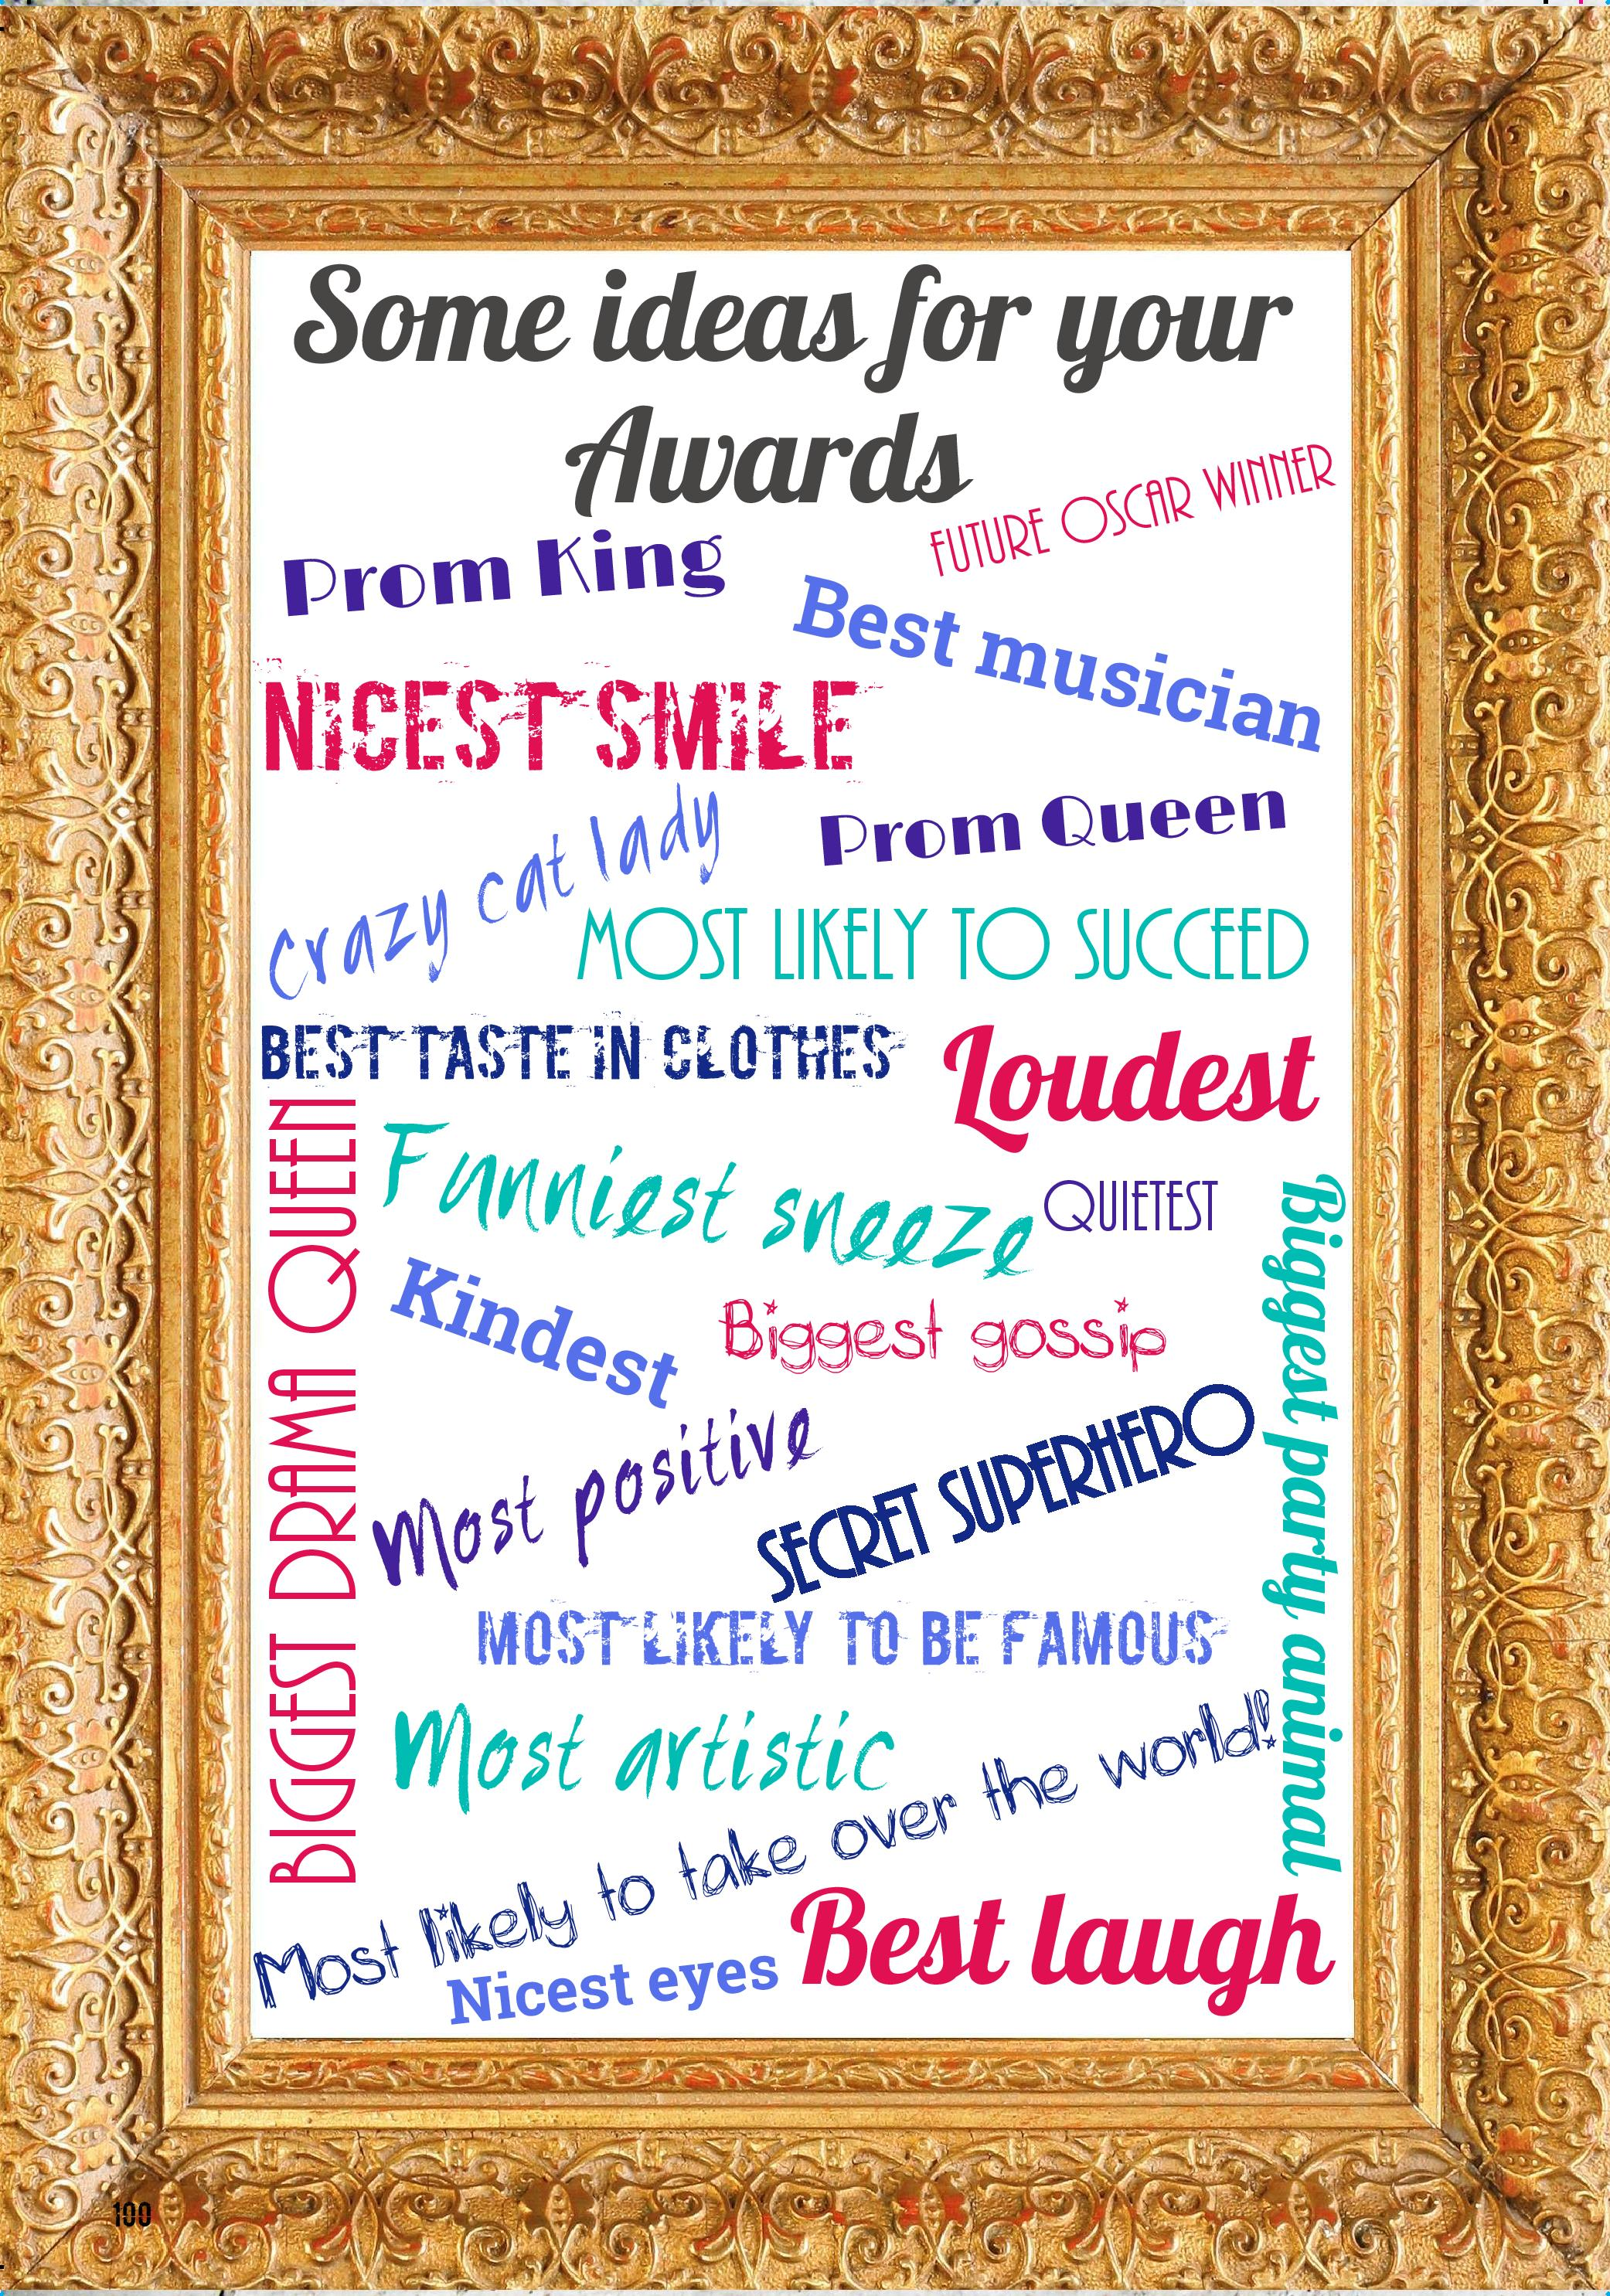 funny award categories for friends